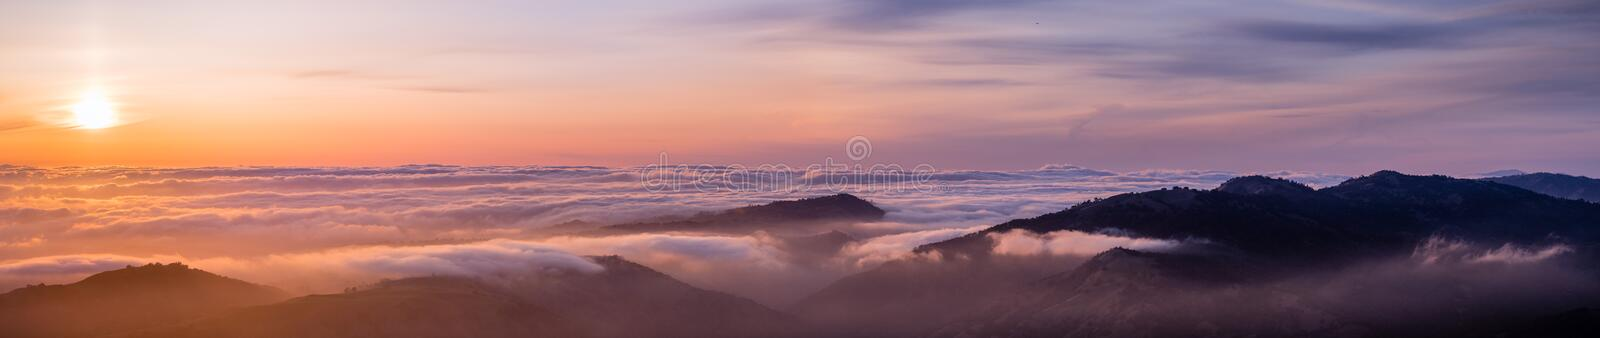 Panoramic view of a sunset over a sea of clouds covering south San Francisco bay area; mountain ridges in the foreground; view stock photography